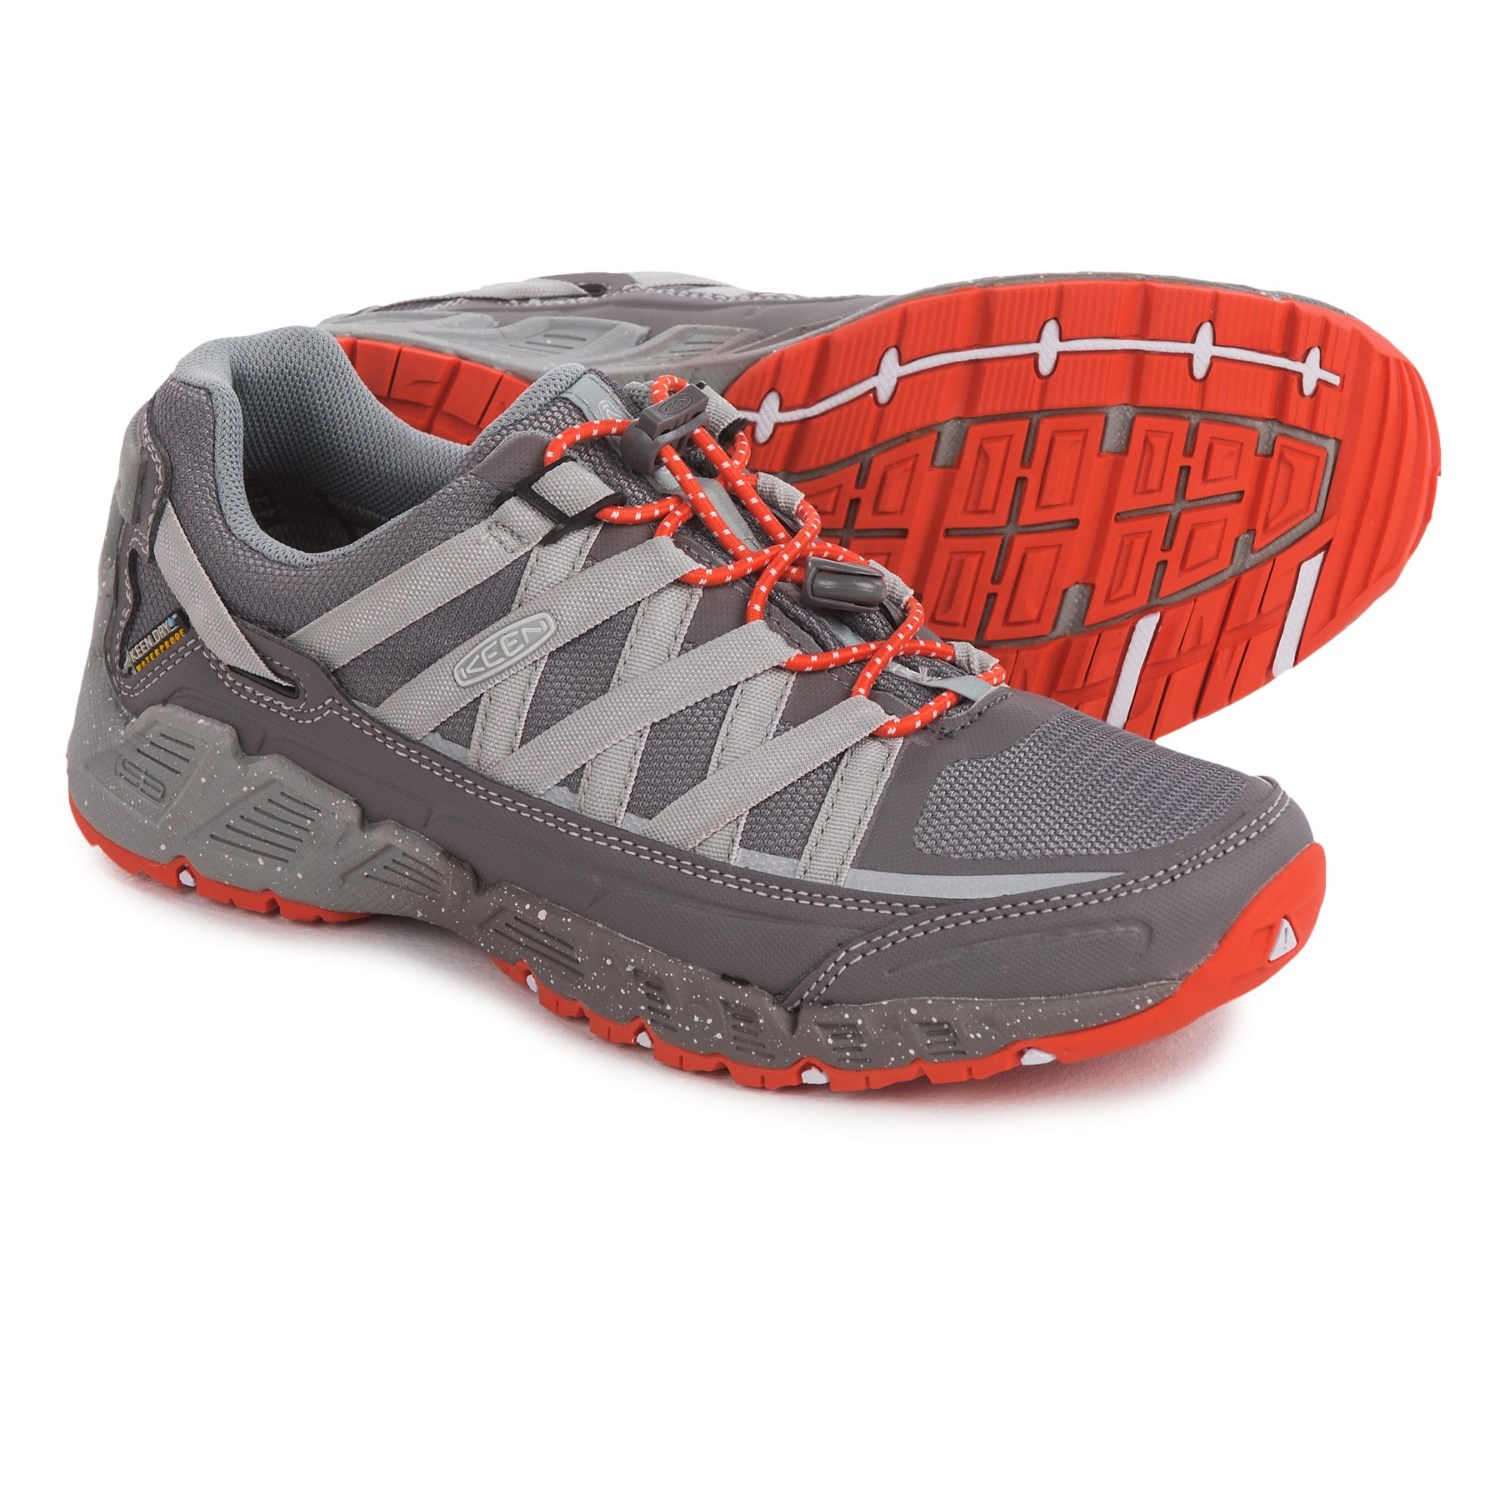 Clearance The Cheapest Price Keen Versatrail Wp Hiking Shoes Womens Shark 3W7V